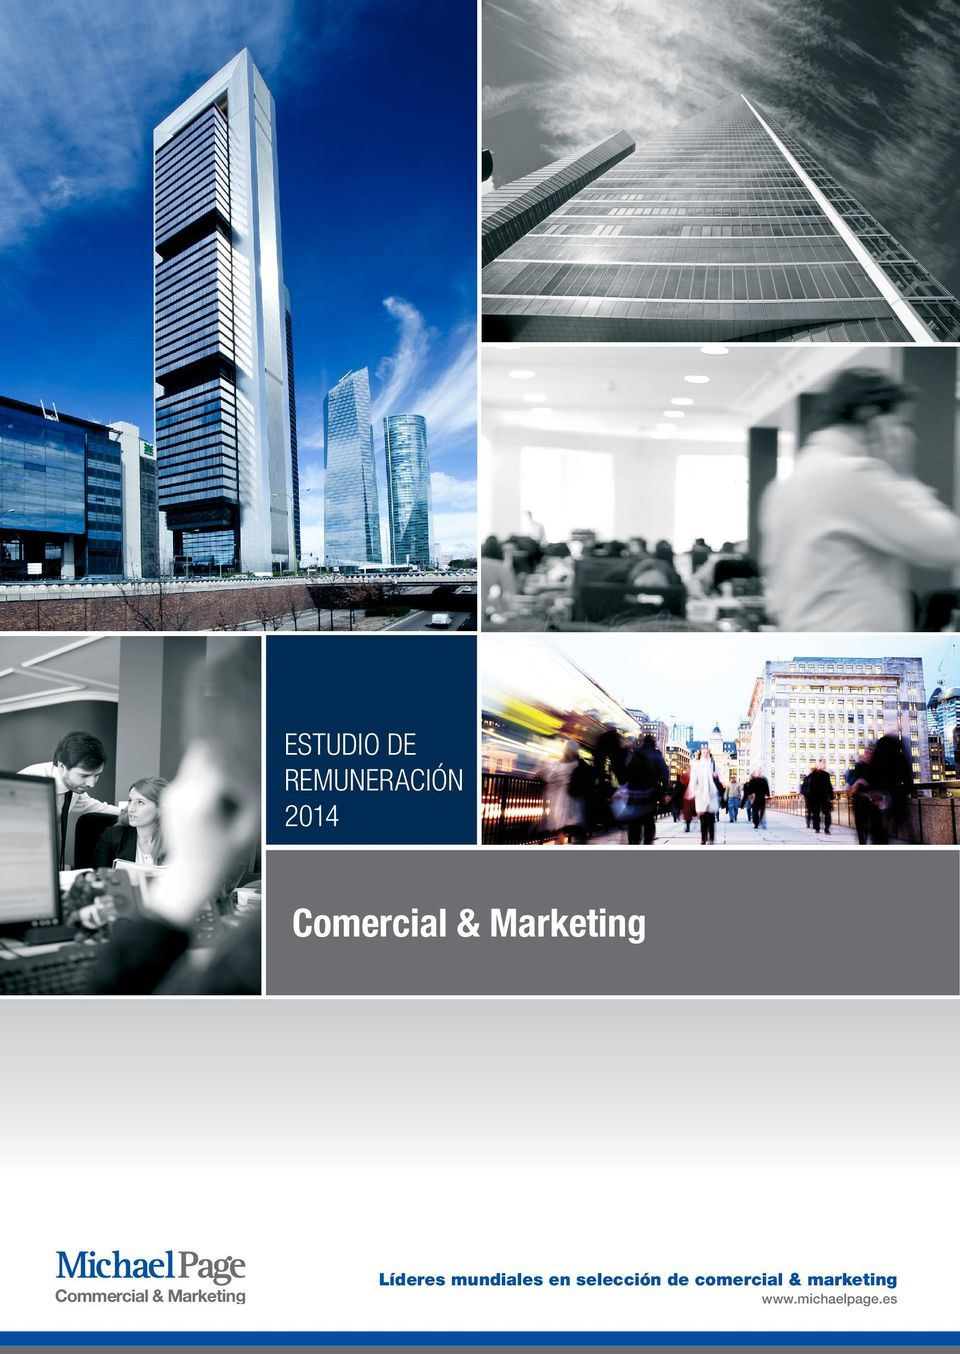 Comercial Life Sciences Commercial & Marketing Líderes